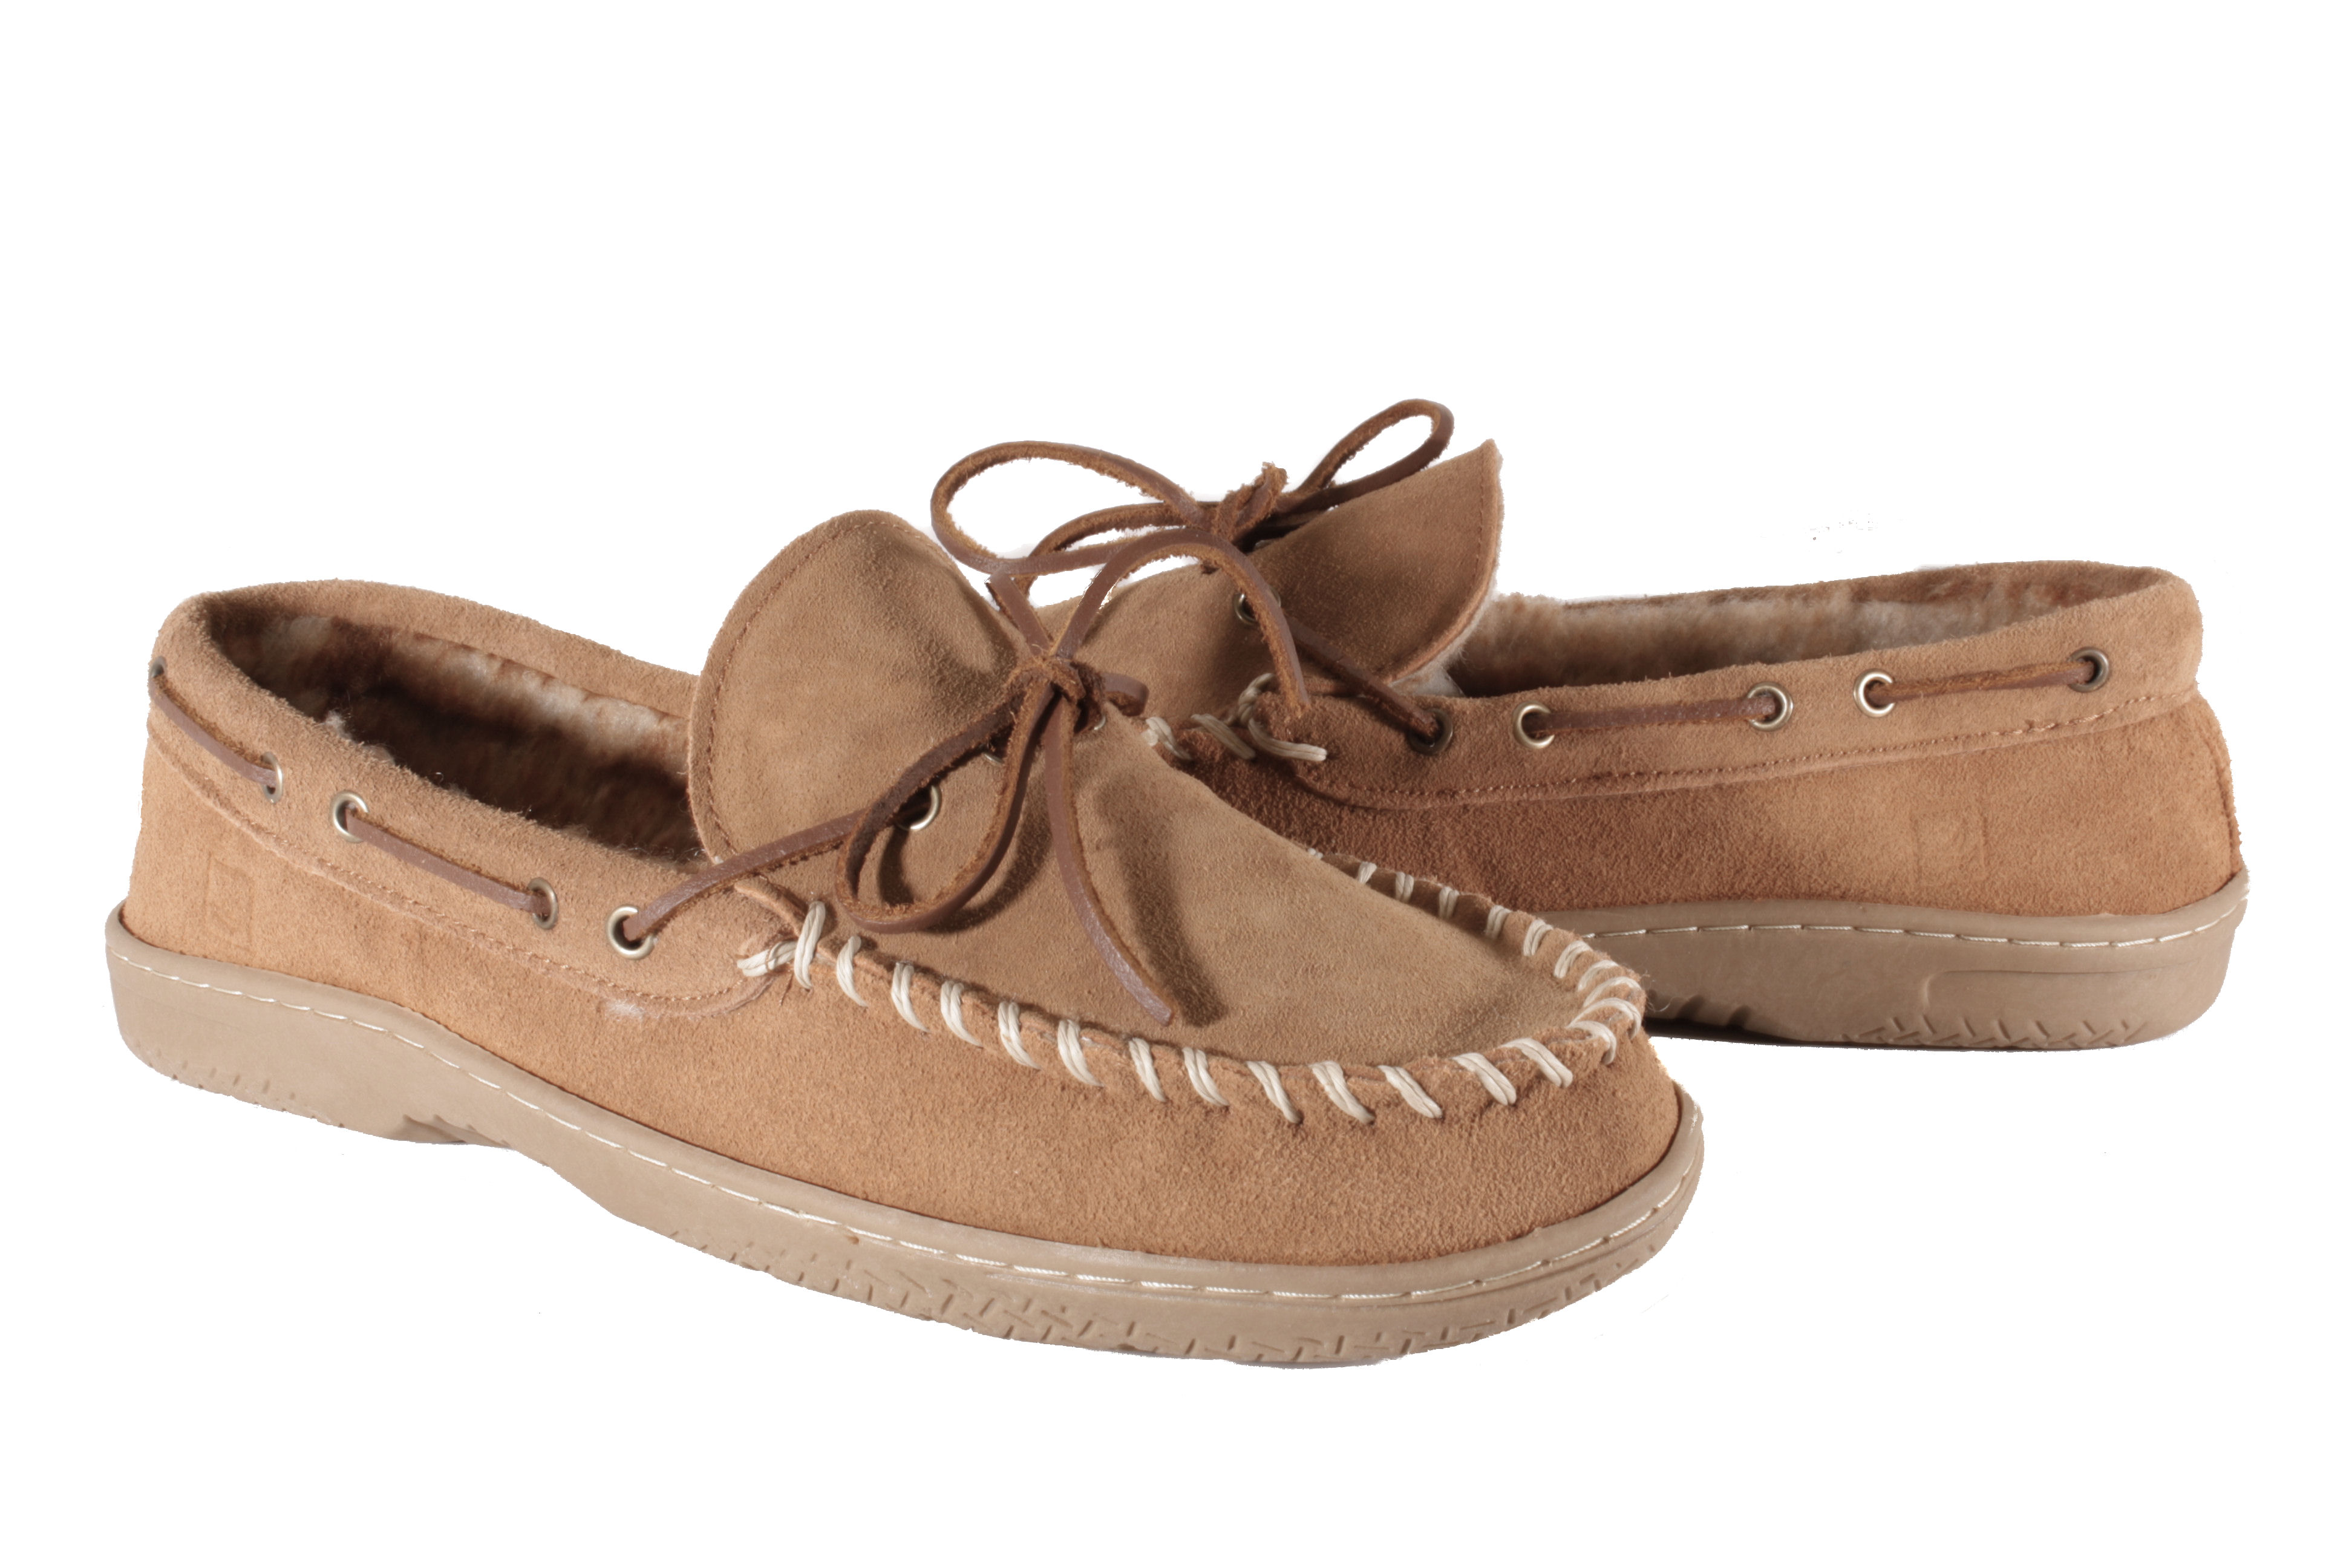 Sperry Top Sider Moccasin Suede Casual Slippers House